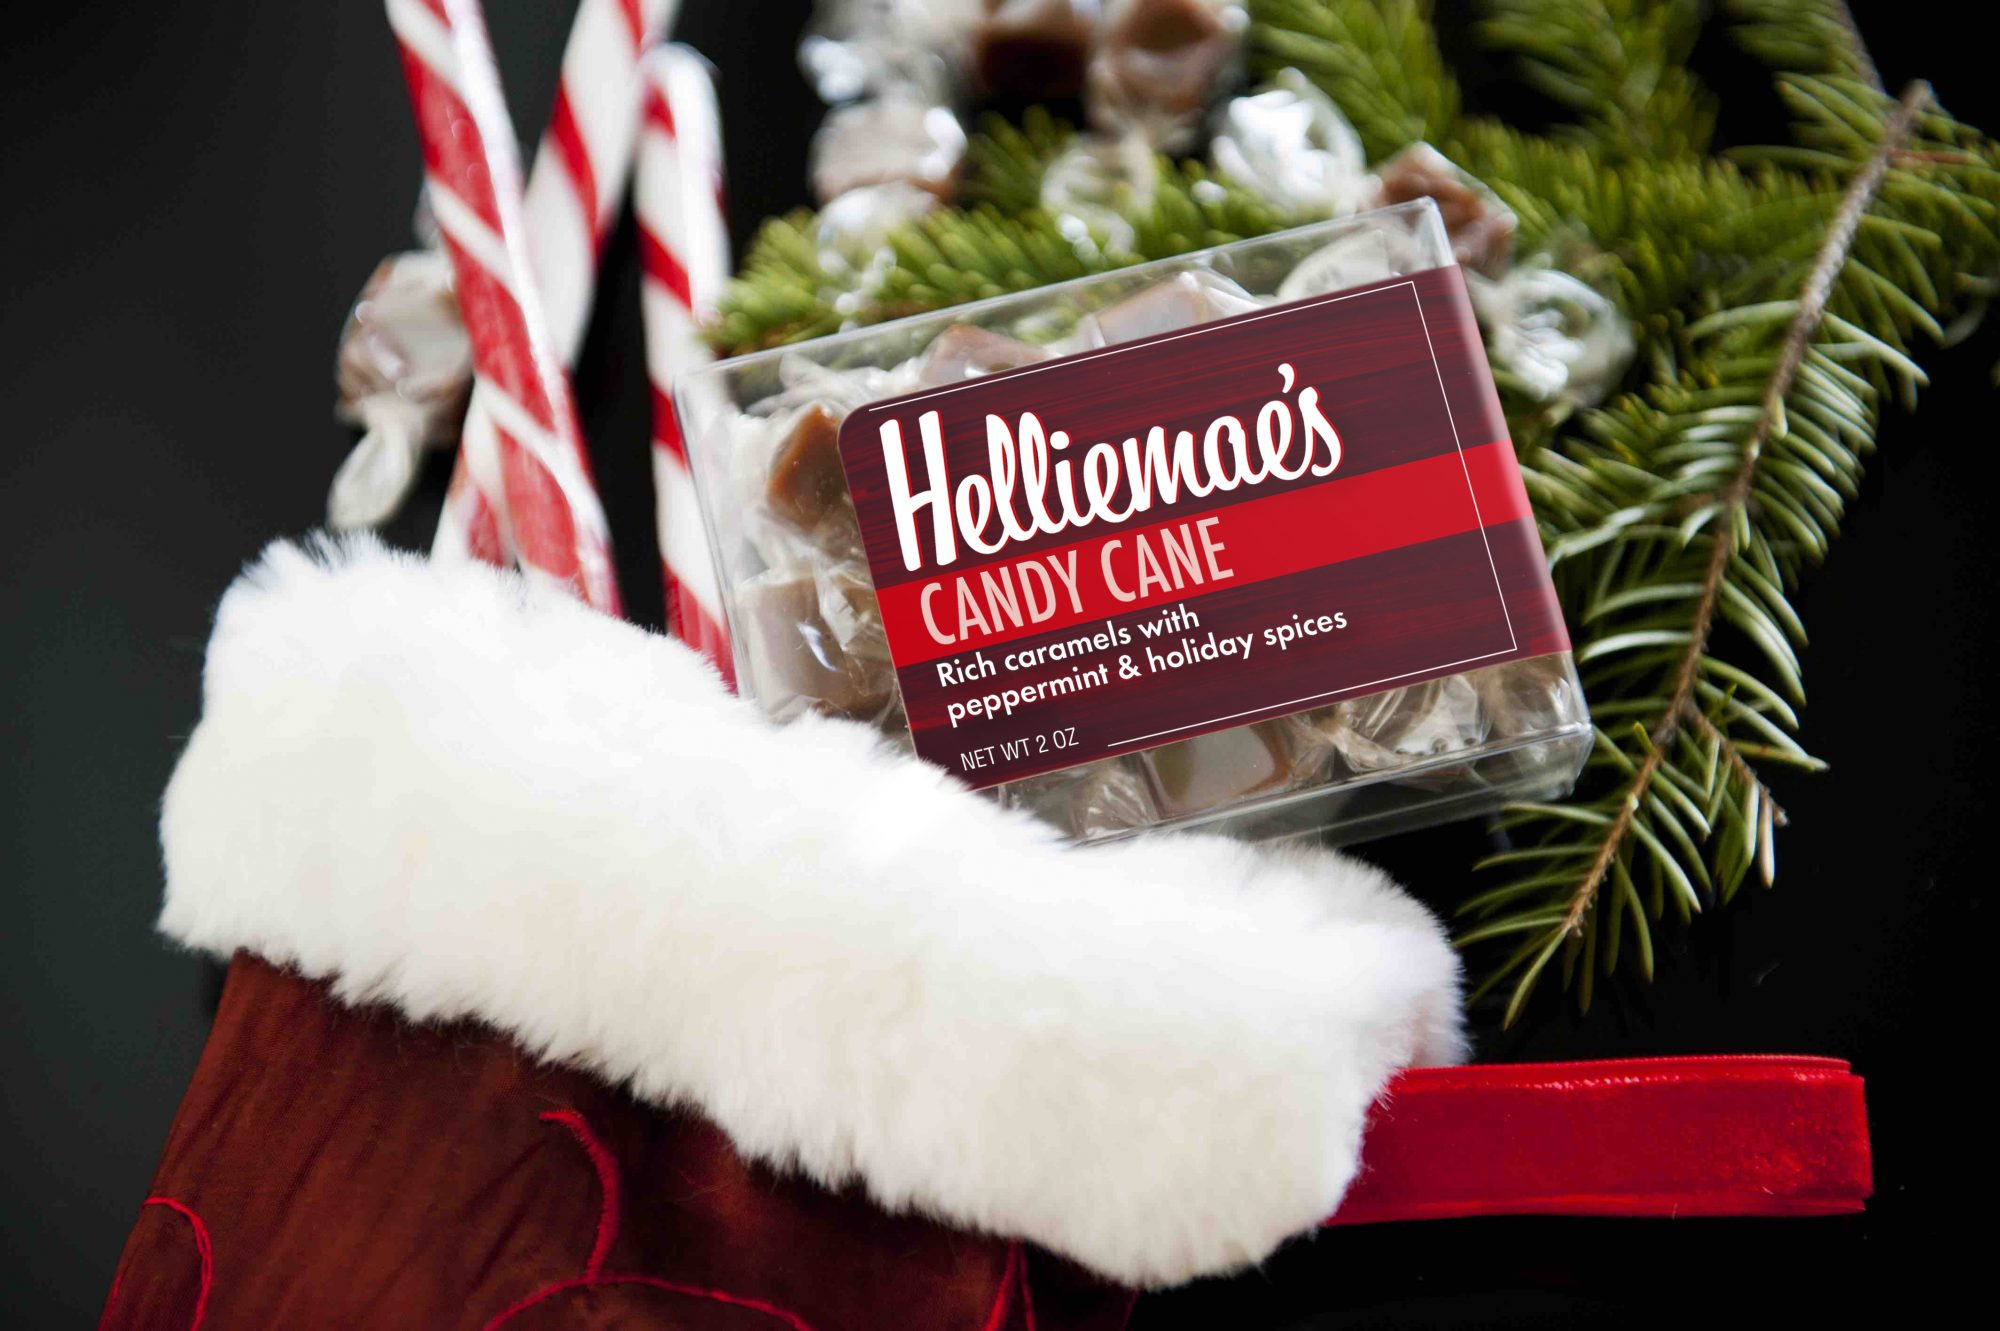 Candy Cane CaramelsFor the ultimate sweet treat or stocking stuffer, these salted caramels from Helliemae's make a great addition during the holidays.  These caramels have a sweet, smoky flavor and are infused with a delicious peppermint twist.